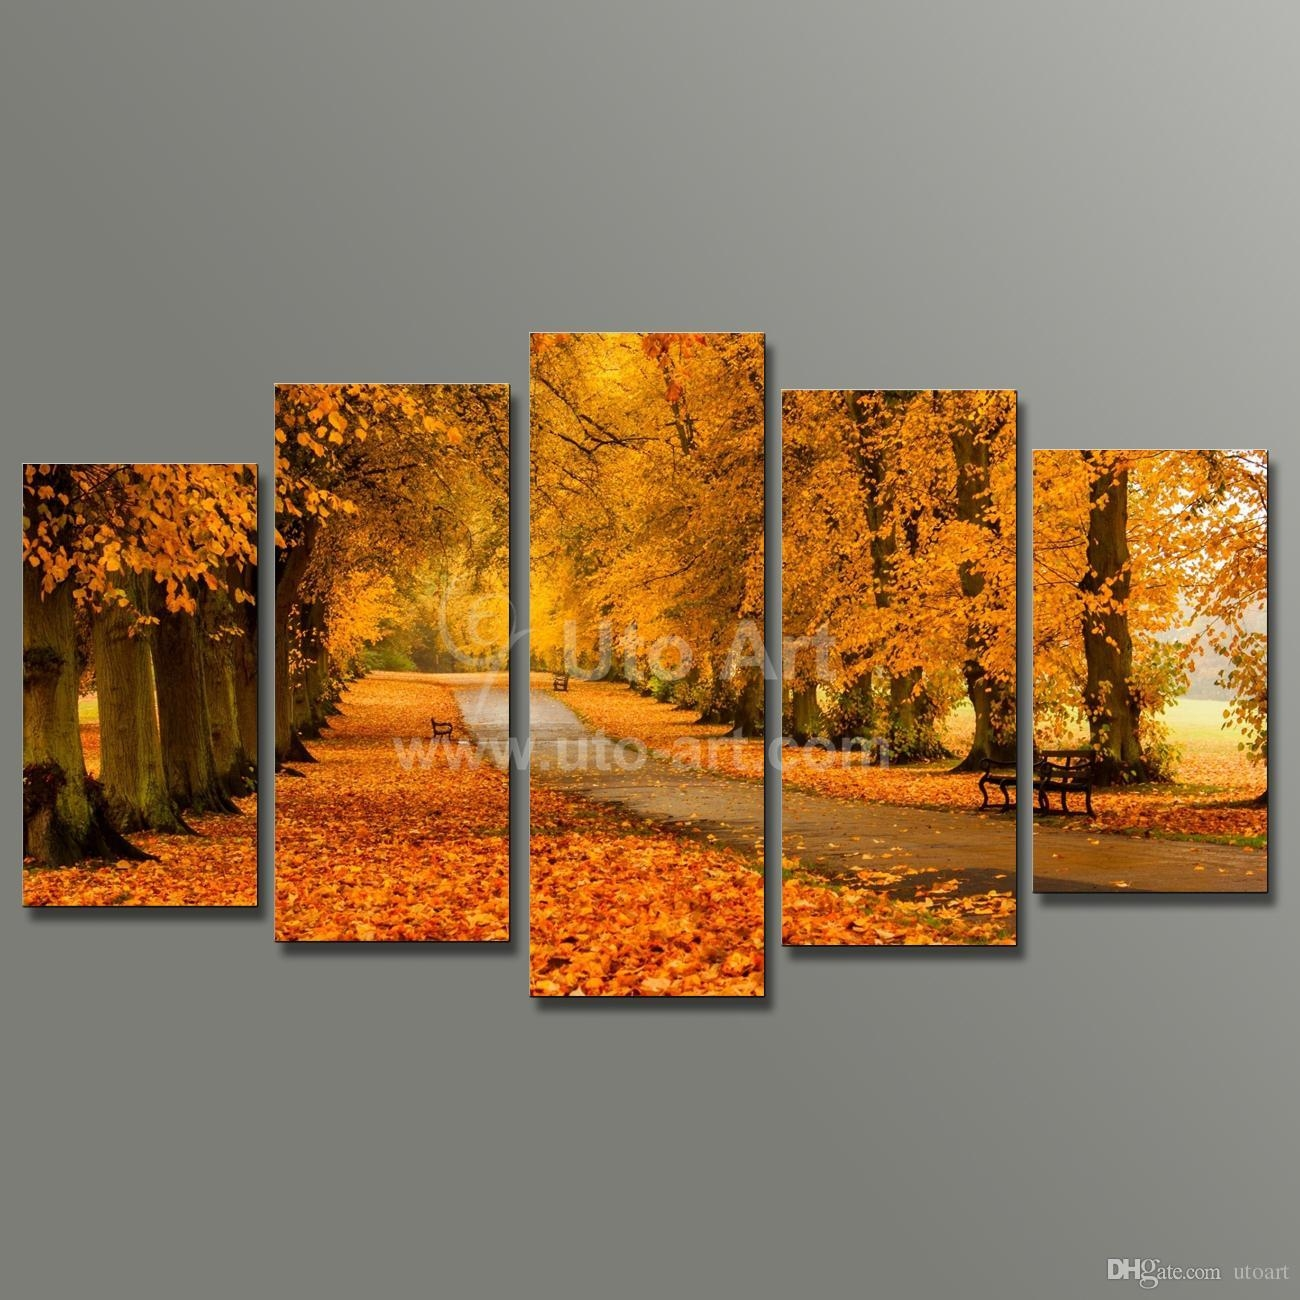 2017 Modern Modular Paintings On Canvas 5 Panel Wall Art Painting With Regard To Canvas Landscape Wall Art (View 10 of 20)